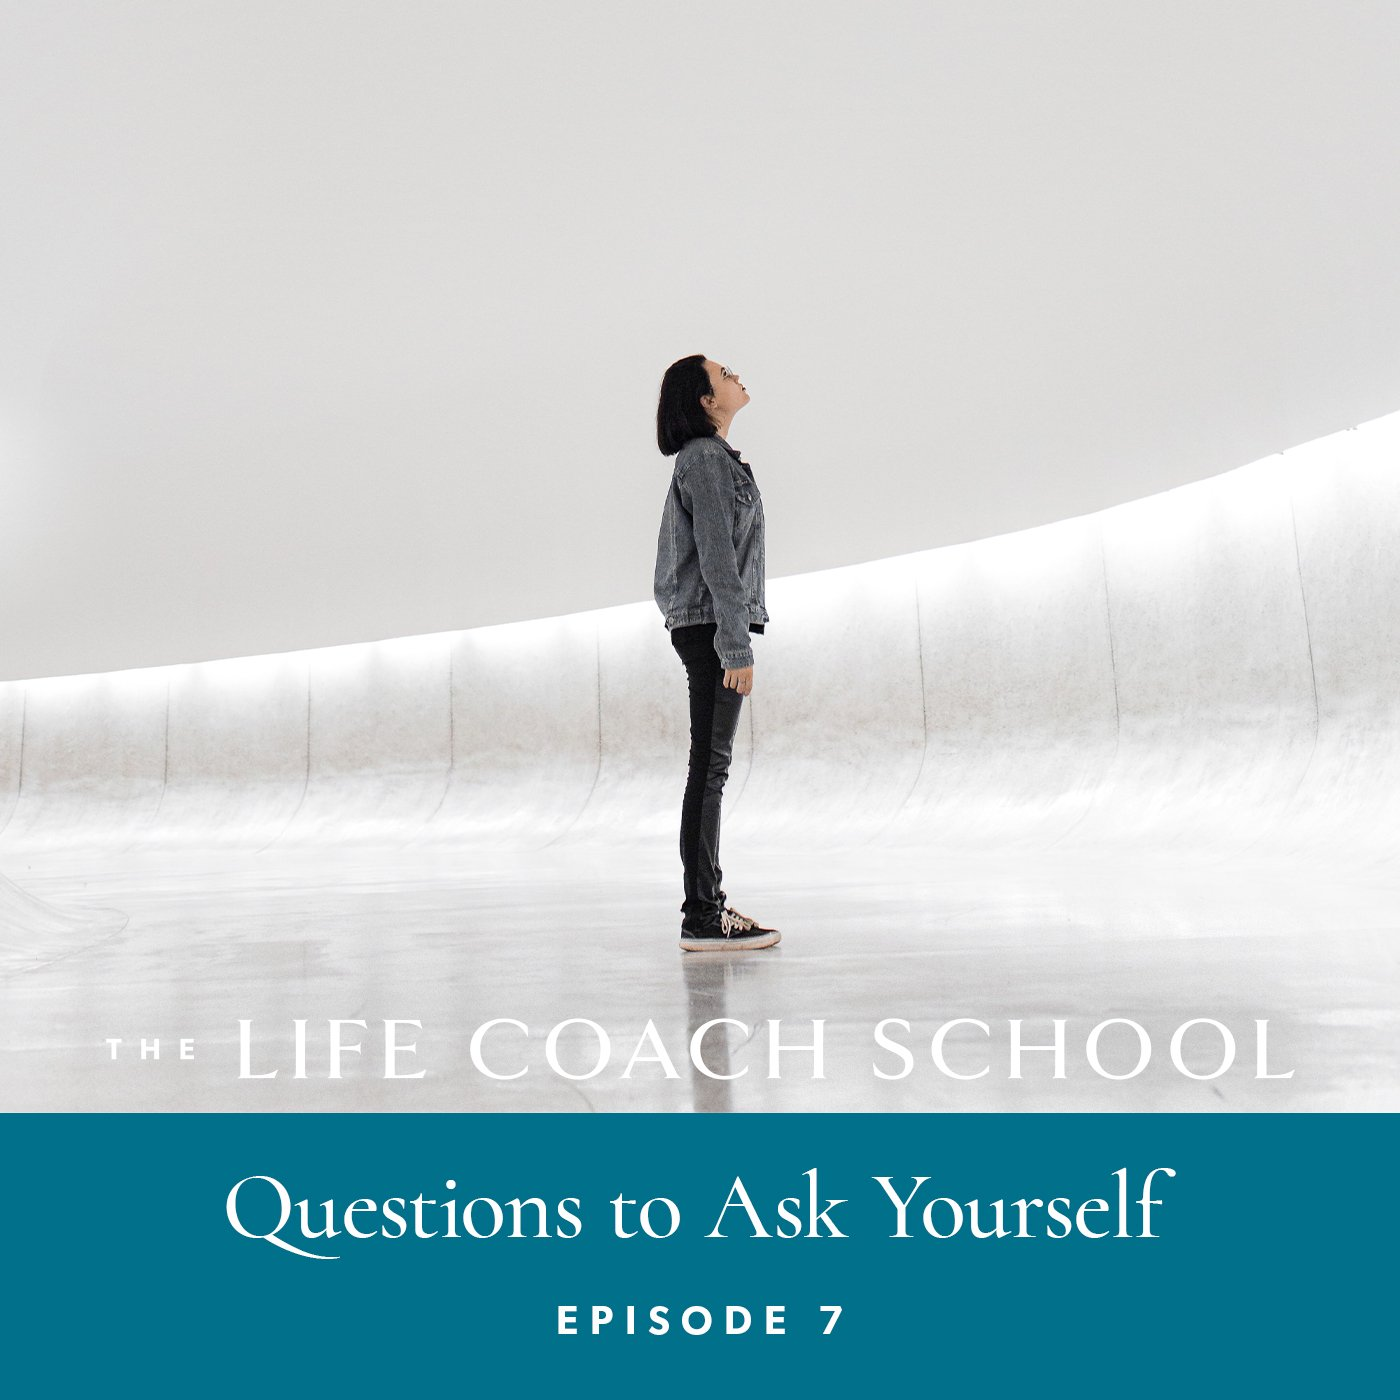 The Life Coach School Podcast with Brooke Castillo | Episode 7 | Questions to Ask Yourself